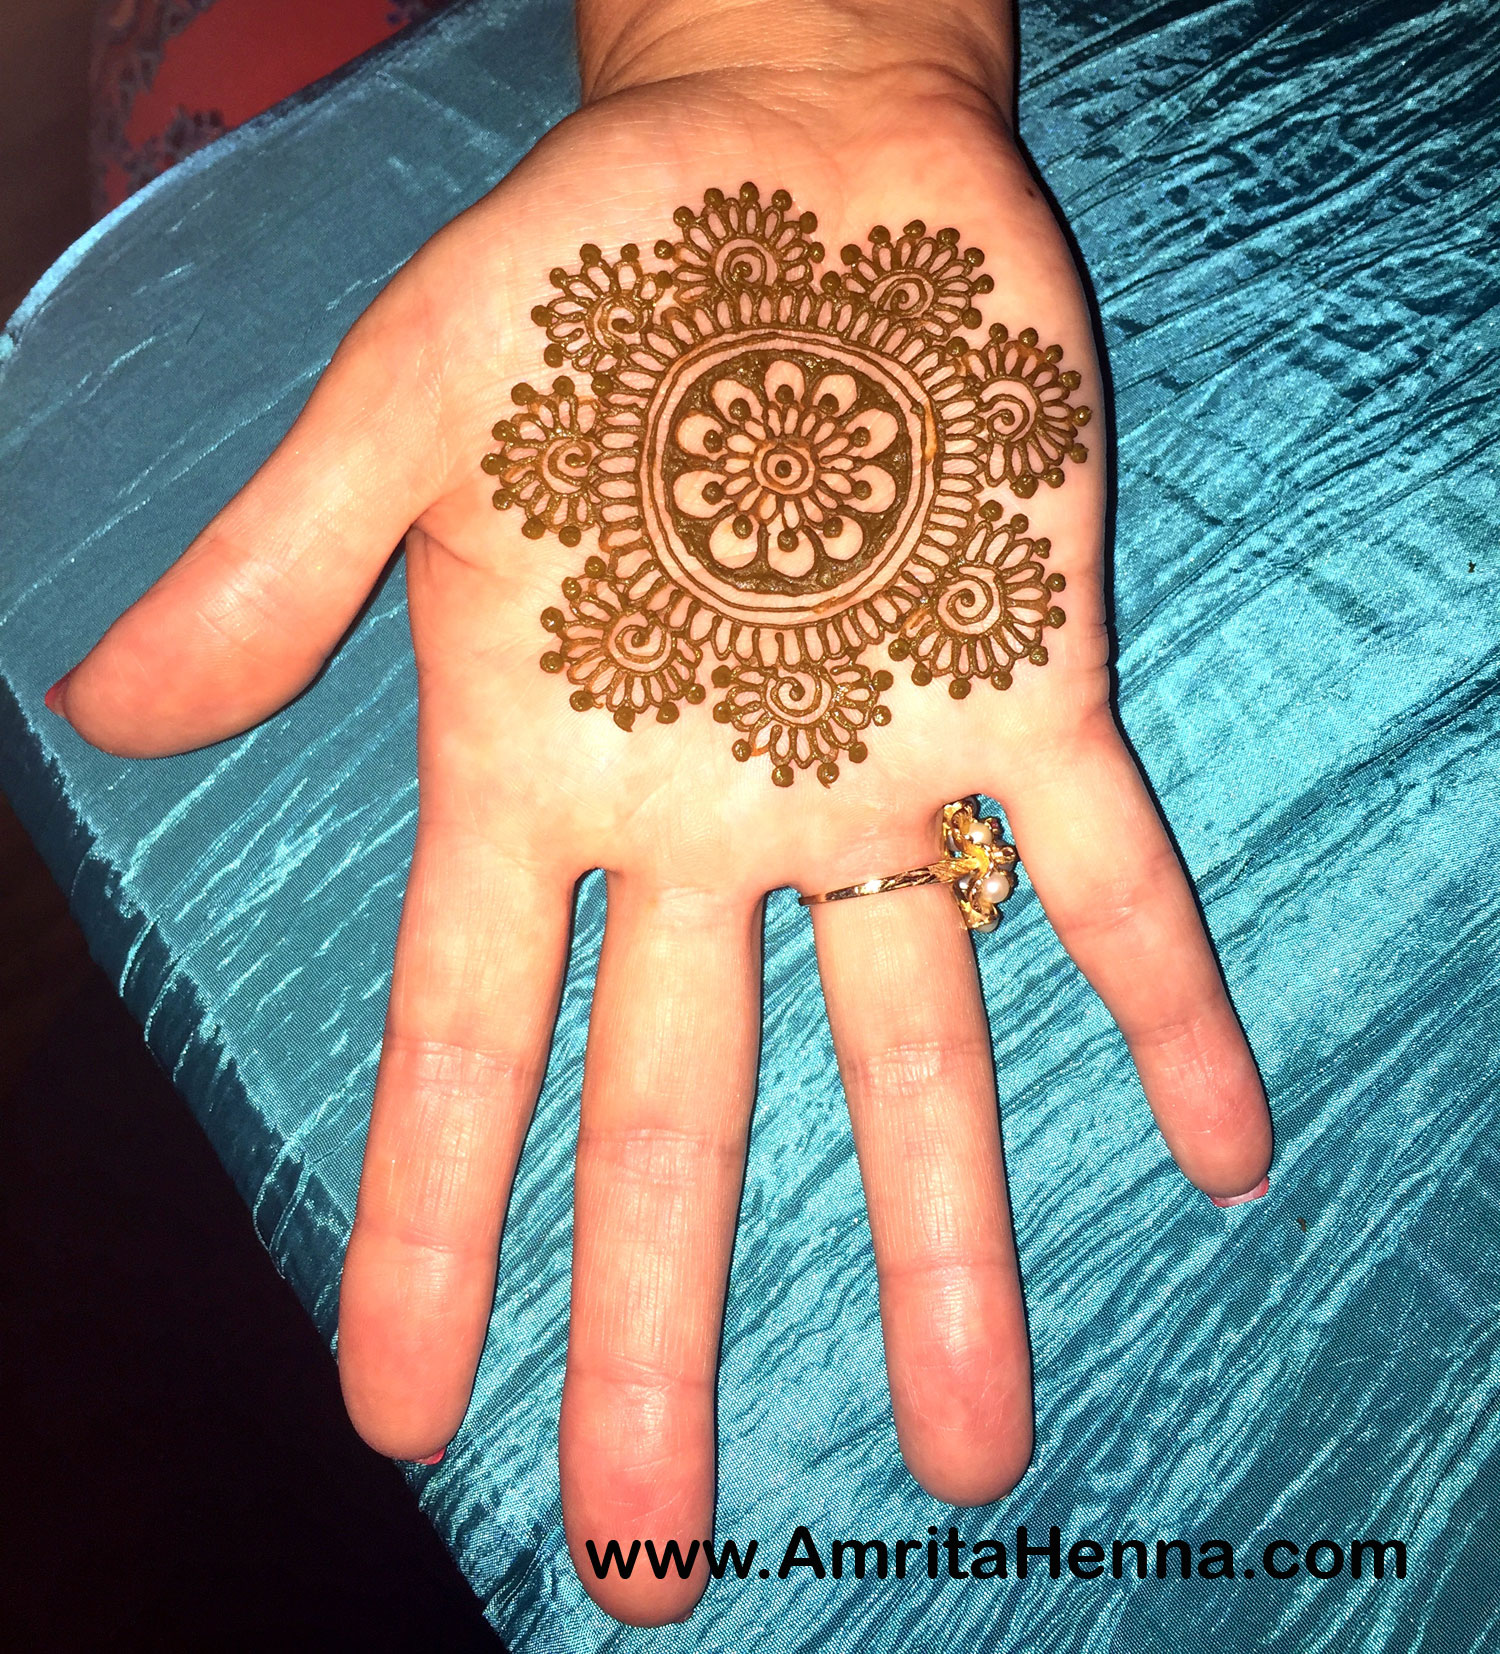 Circle mehndi designs – RoundMandala henna designs for hands photo